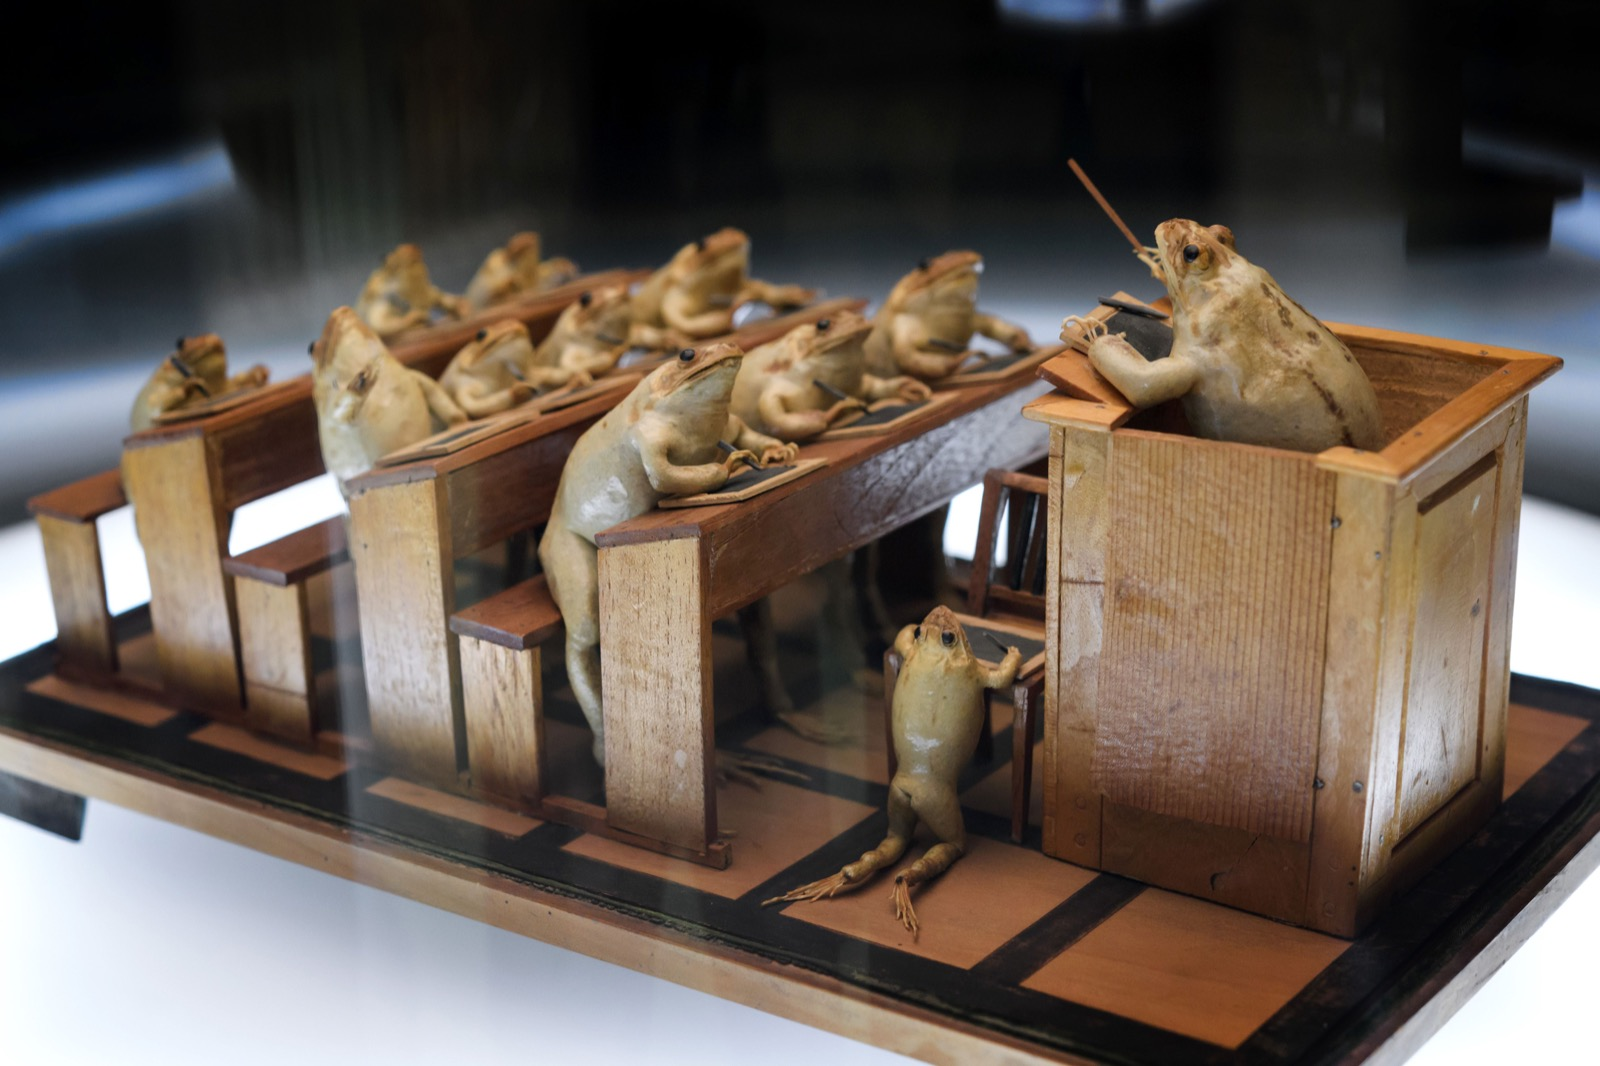 Frogs-at-school-at-Frog-Museum-in-Estavayer-le-Lac-western-Switzerland-FABRICE-COFFRINI-AFP-Getty-Images-thechicflaneuse